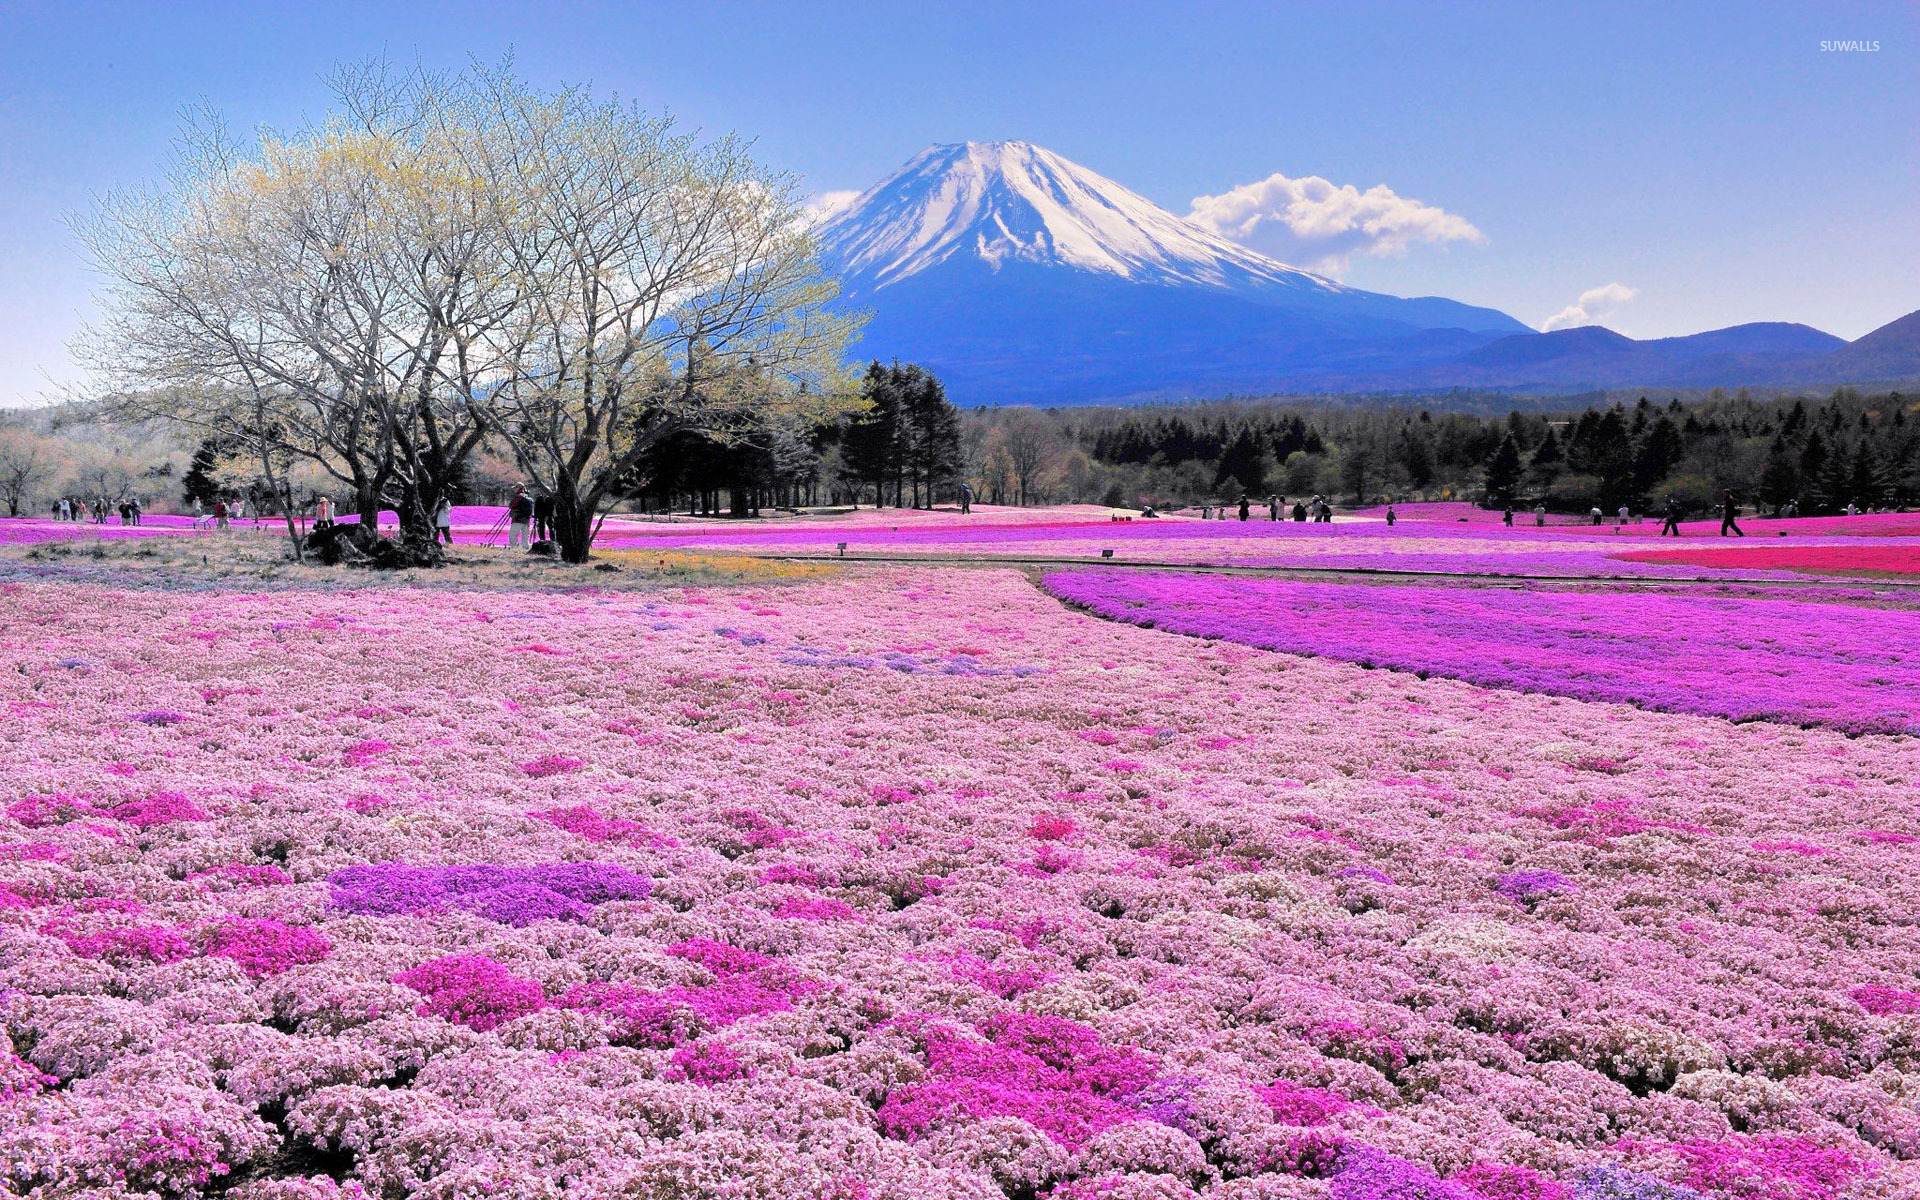 Pink flower field and Mount Fuji wallpaper - Nature wallpapers - #31118